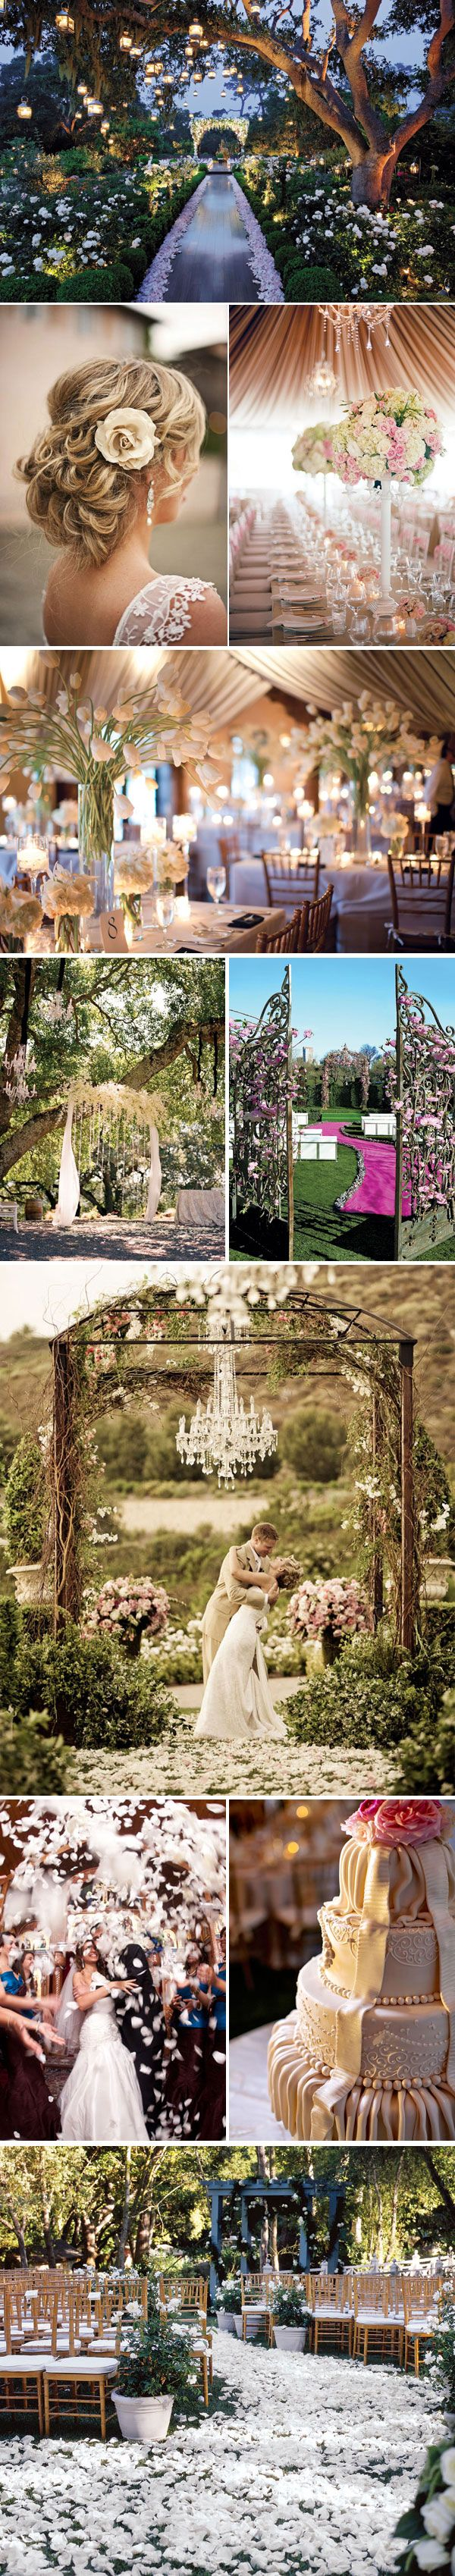 LOVE the outdoor chandelier! Wedding Trends - Wedding Style Inspiration Boards | Wedding Planning, Ideas & Etiquette | Bridal Guide Magazine